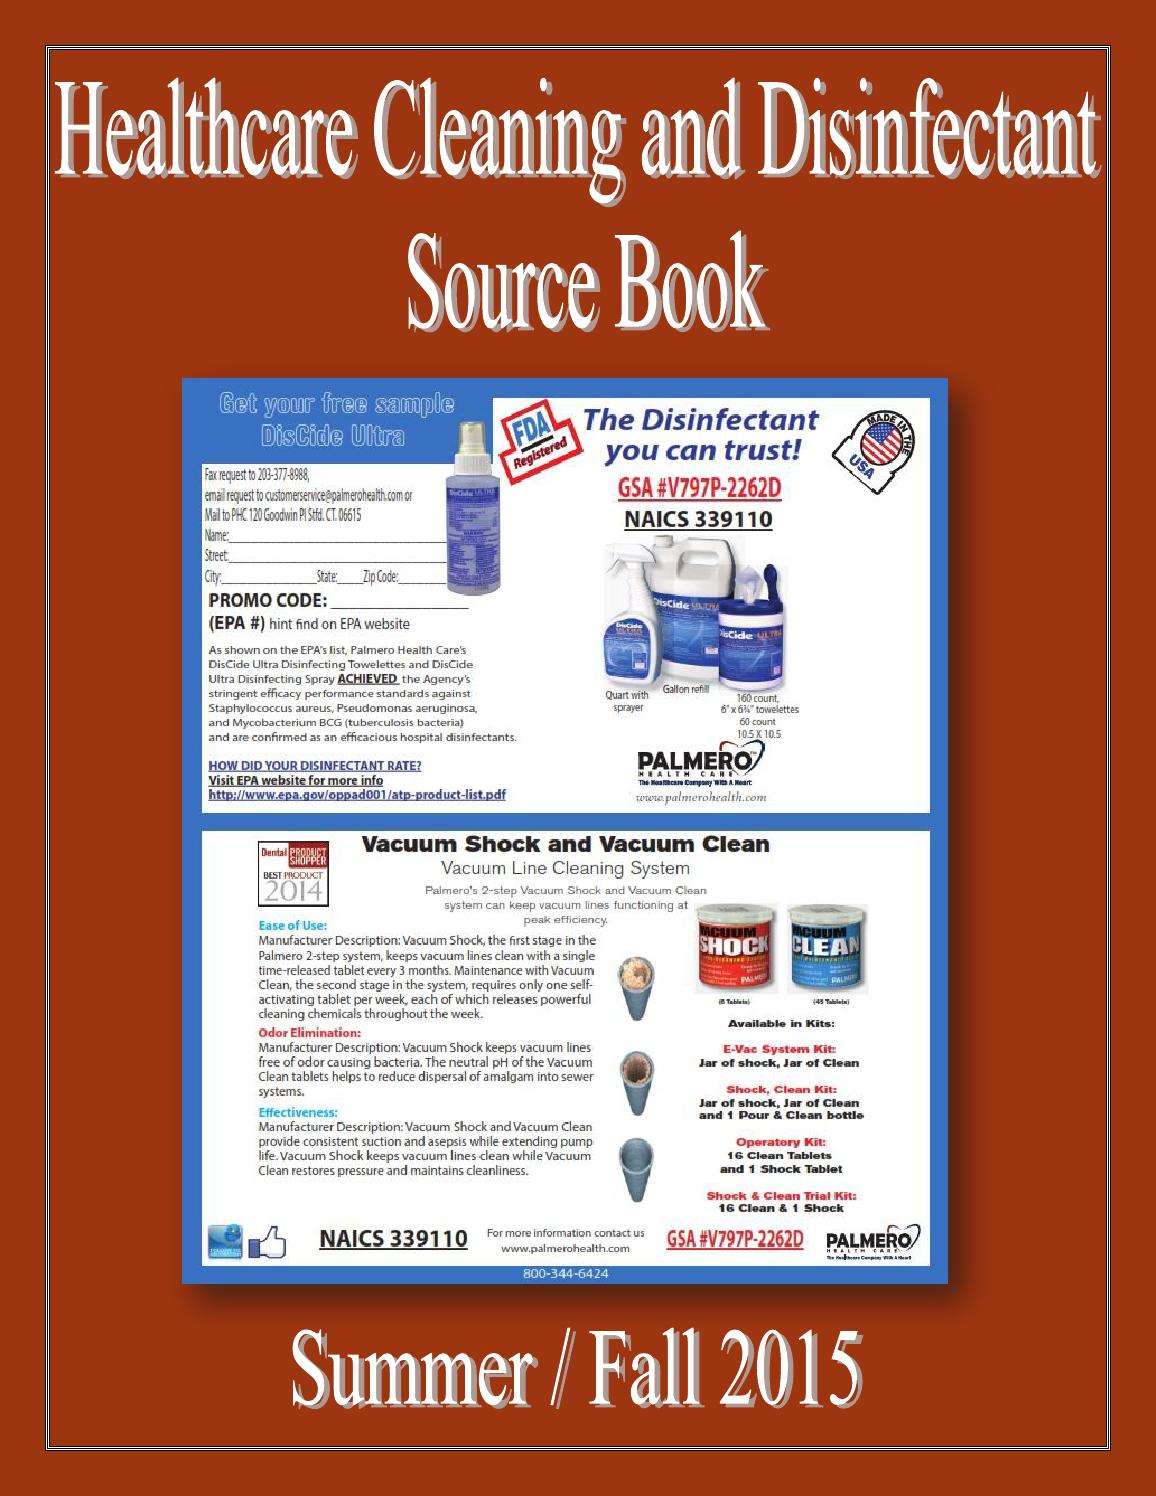 trane wiring diagram shunt trip breaker healthcare cleaning and disinfectant source book by federal buyers guide, inc. - issuu